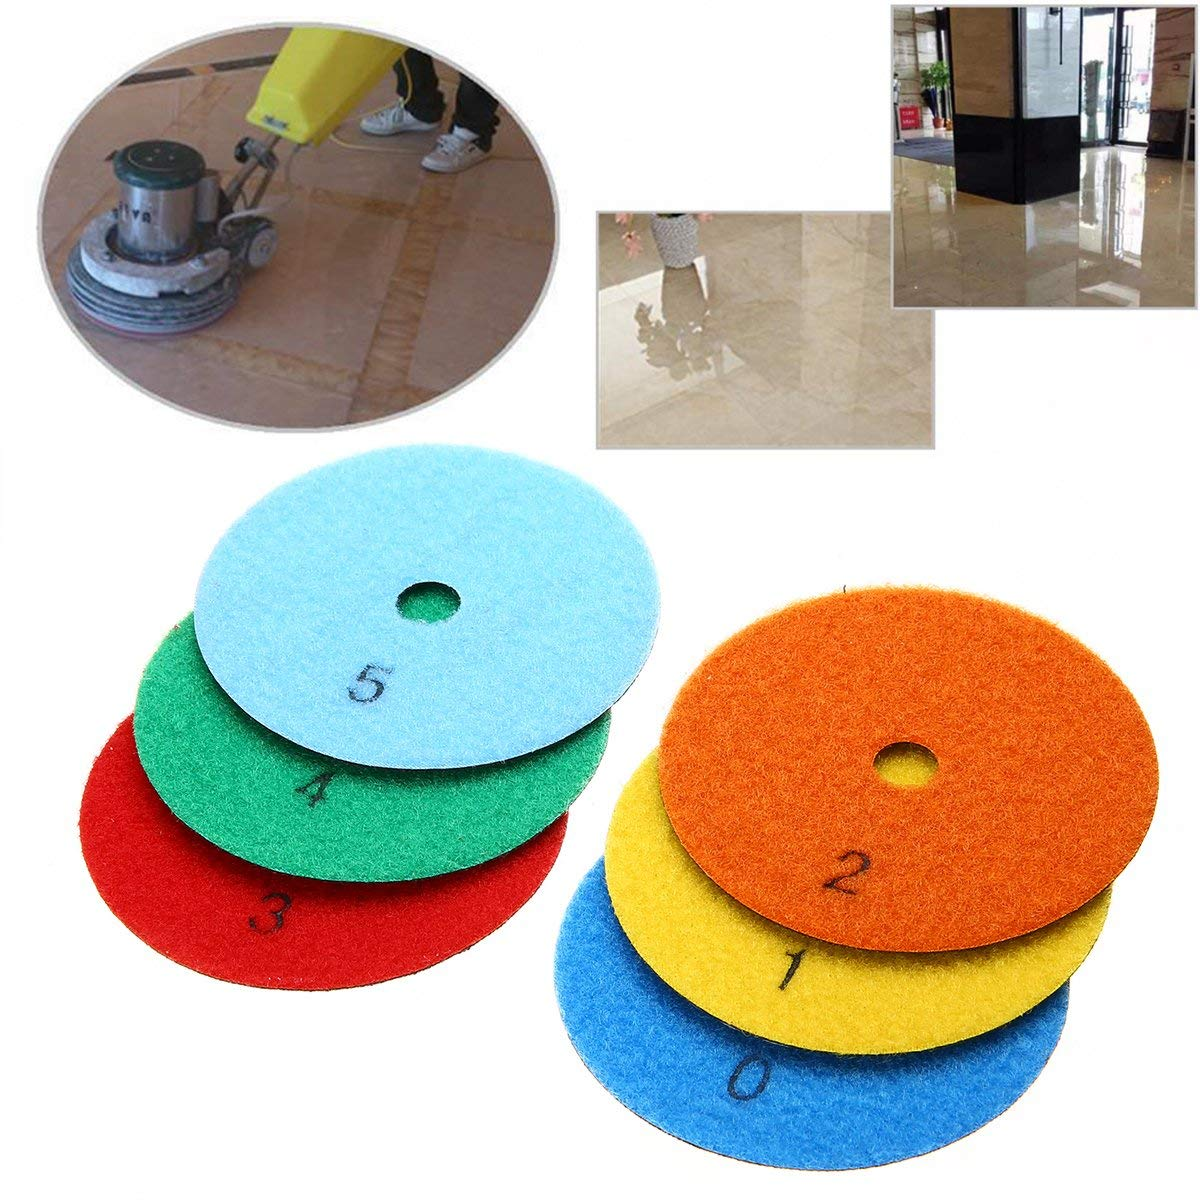 "WILLAI 6pcs 4"" Dry Diamond Polishing Pads Set Kit mayitr Dry Polishiung Pad For Granite Stone Concrete Marble Tools"